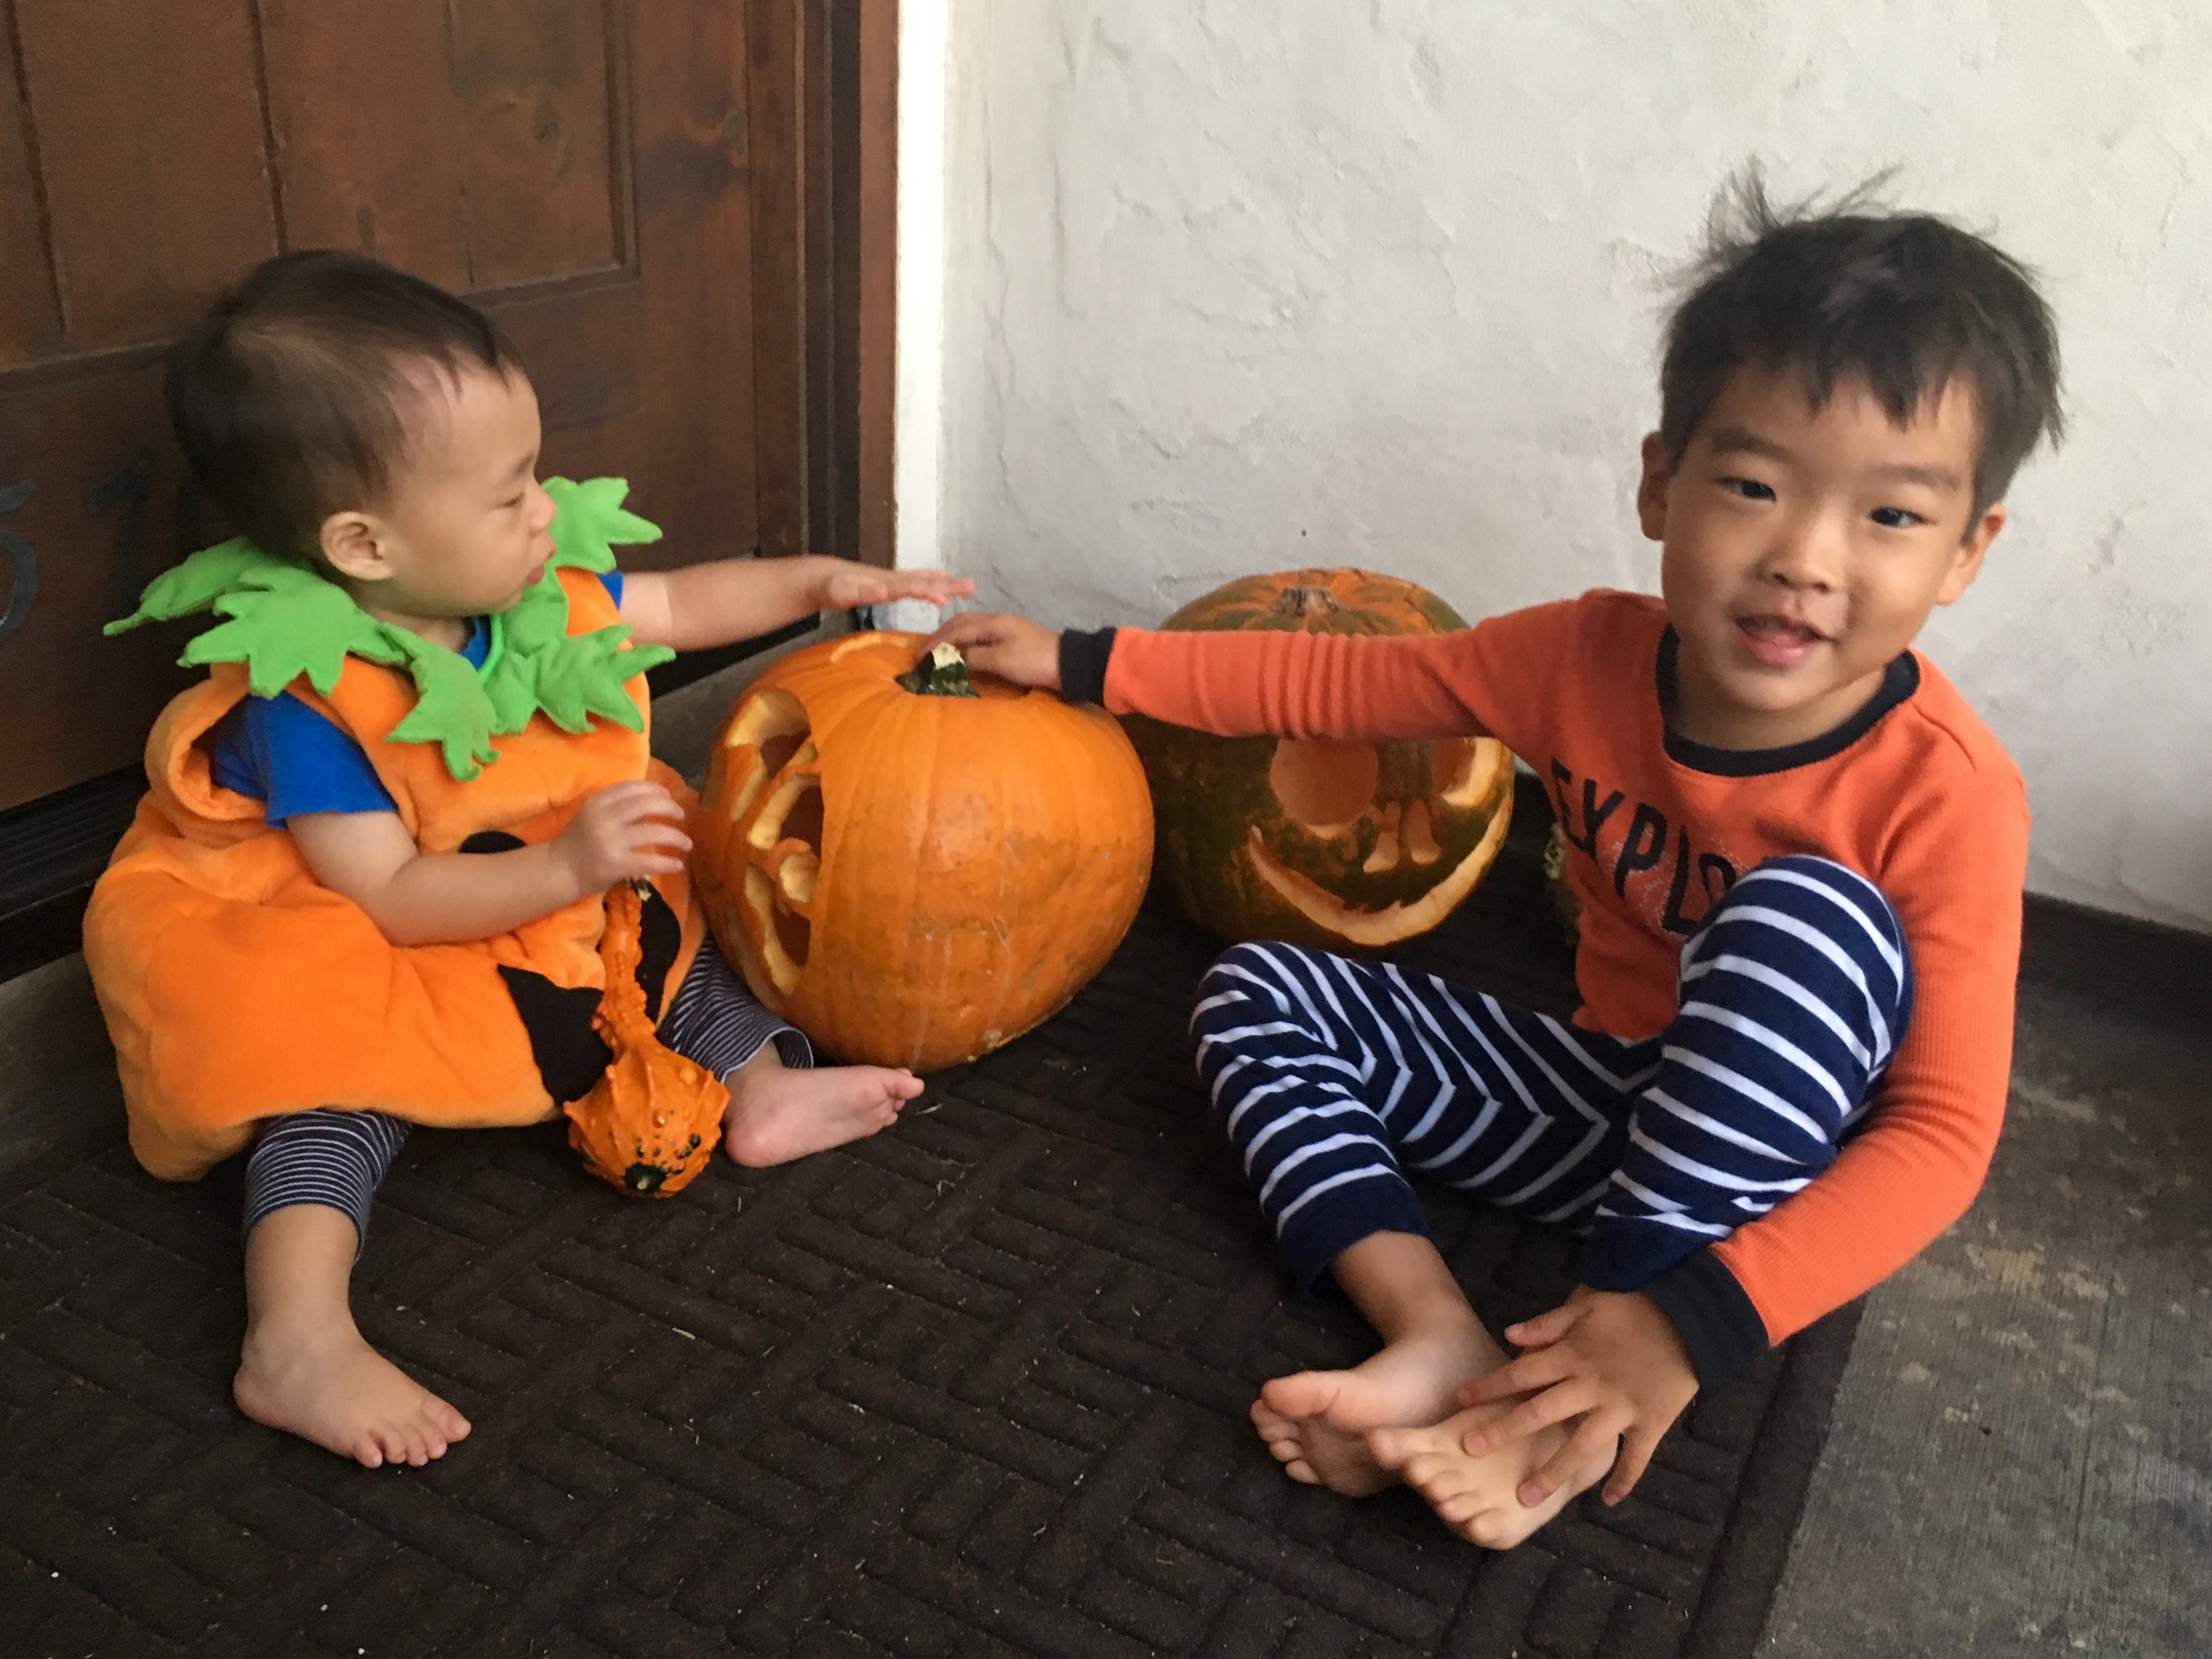 <div class='meta'><div class='origin-logo' data-origin='KTRK'></div><span class='caption-text' data-credit=''>ABC13's Miya Shay and her kiddos with their pumpkin carving creations</span></div>